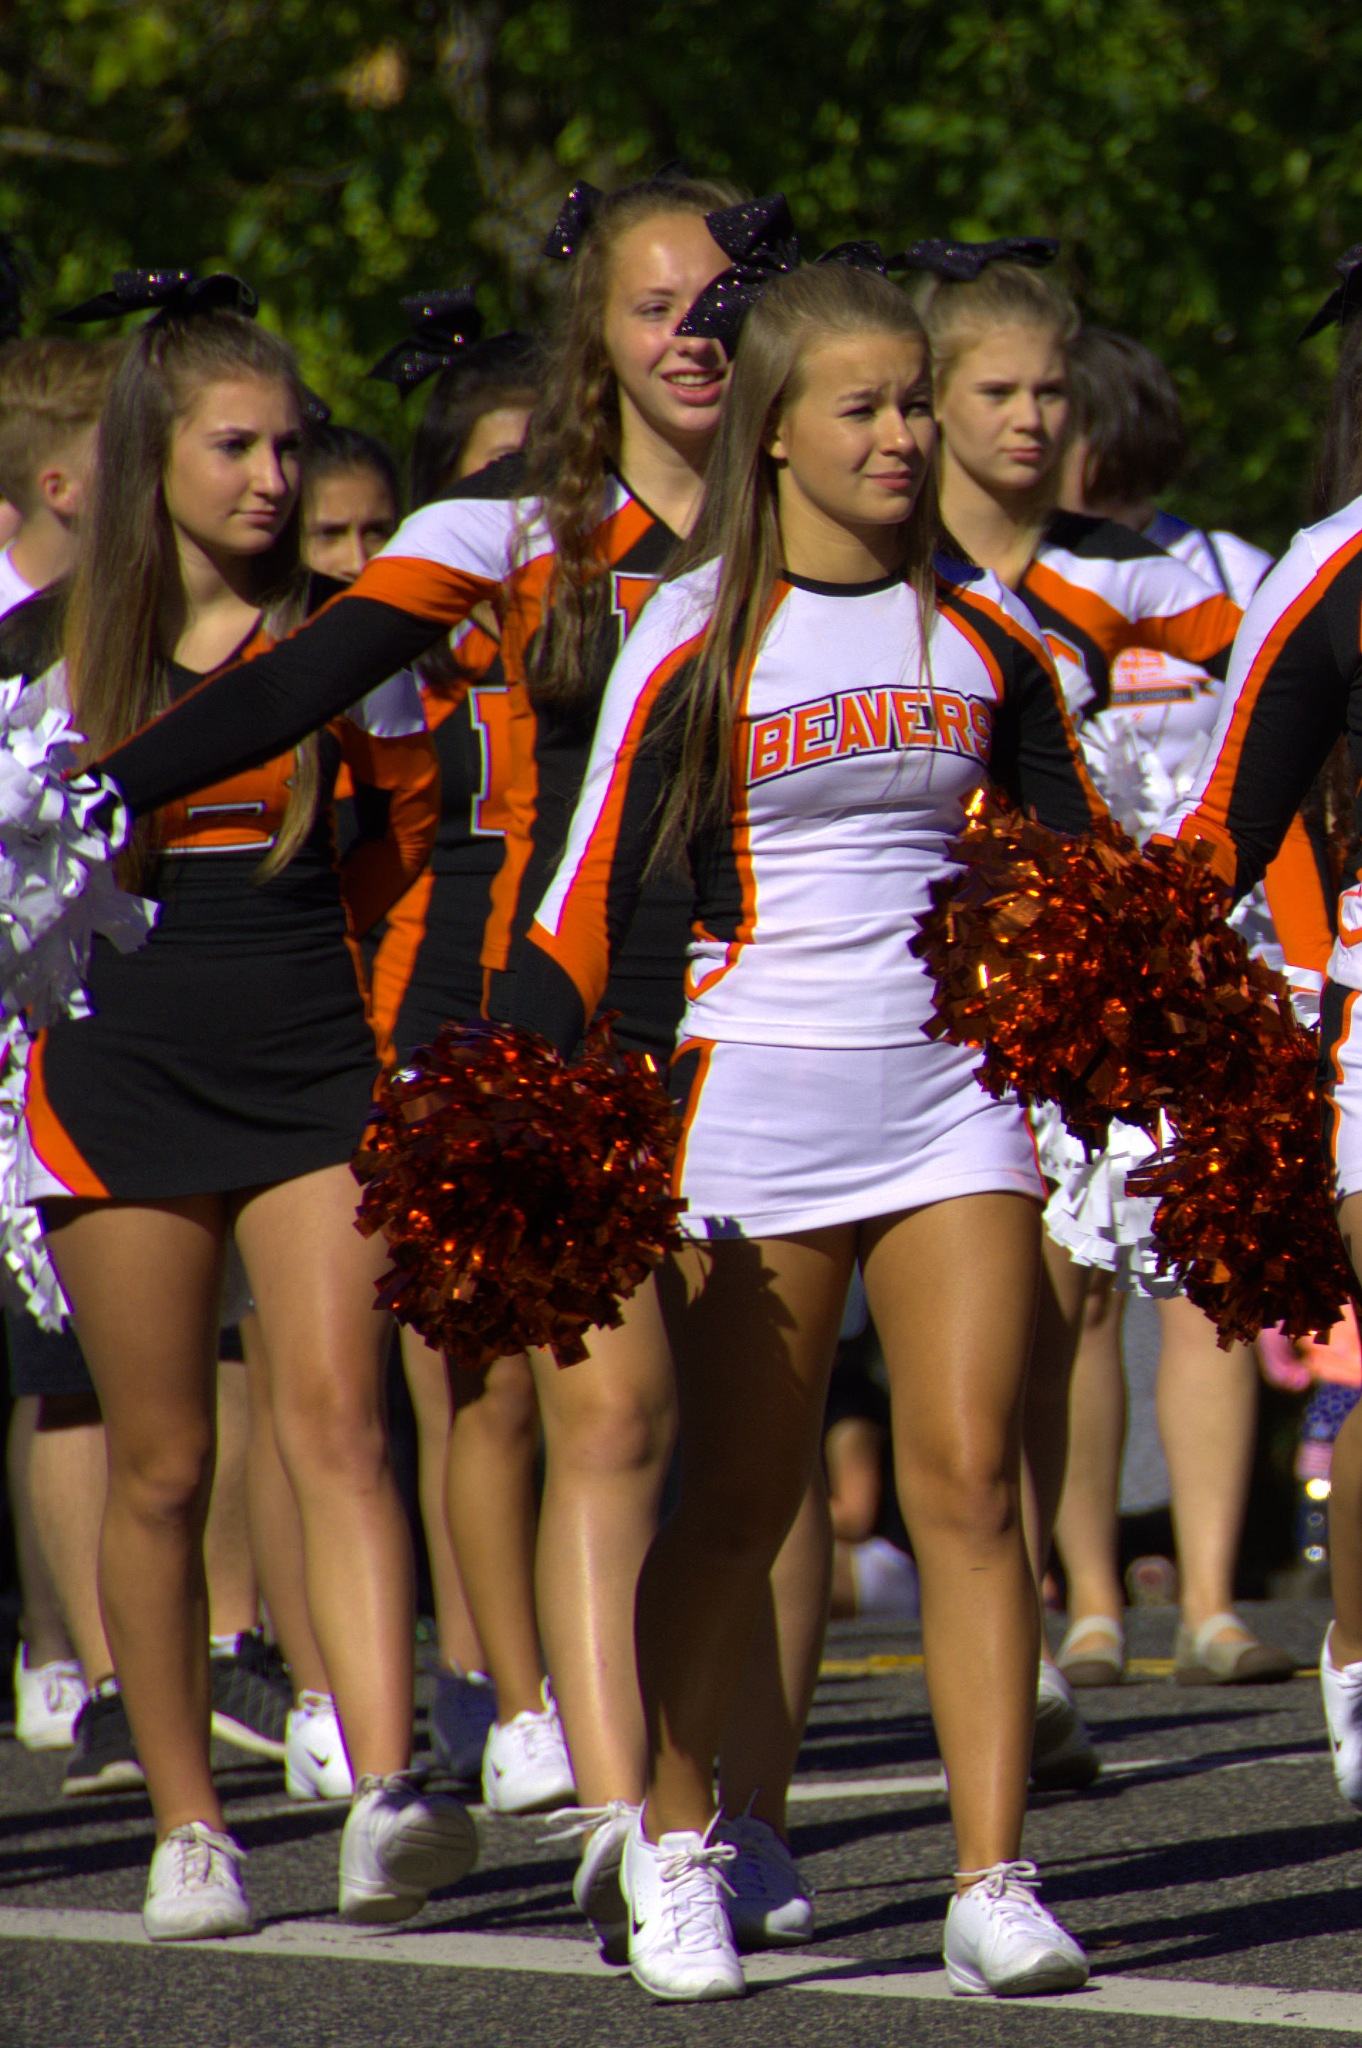 Beavers Cheer Squad by pscottwong